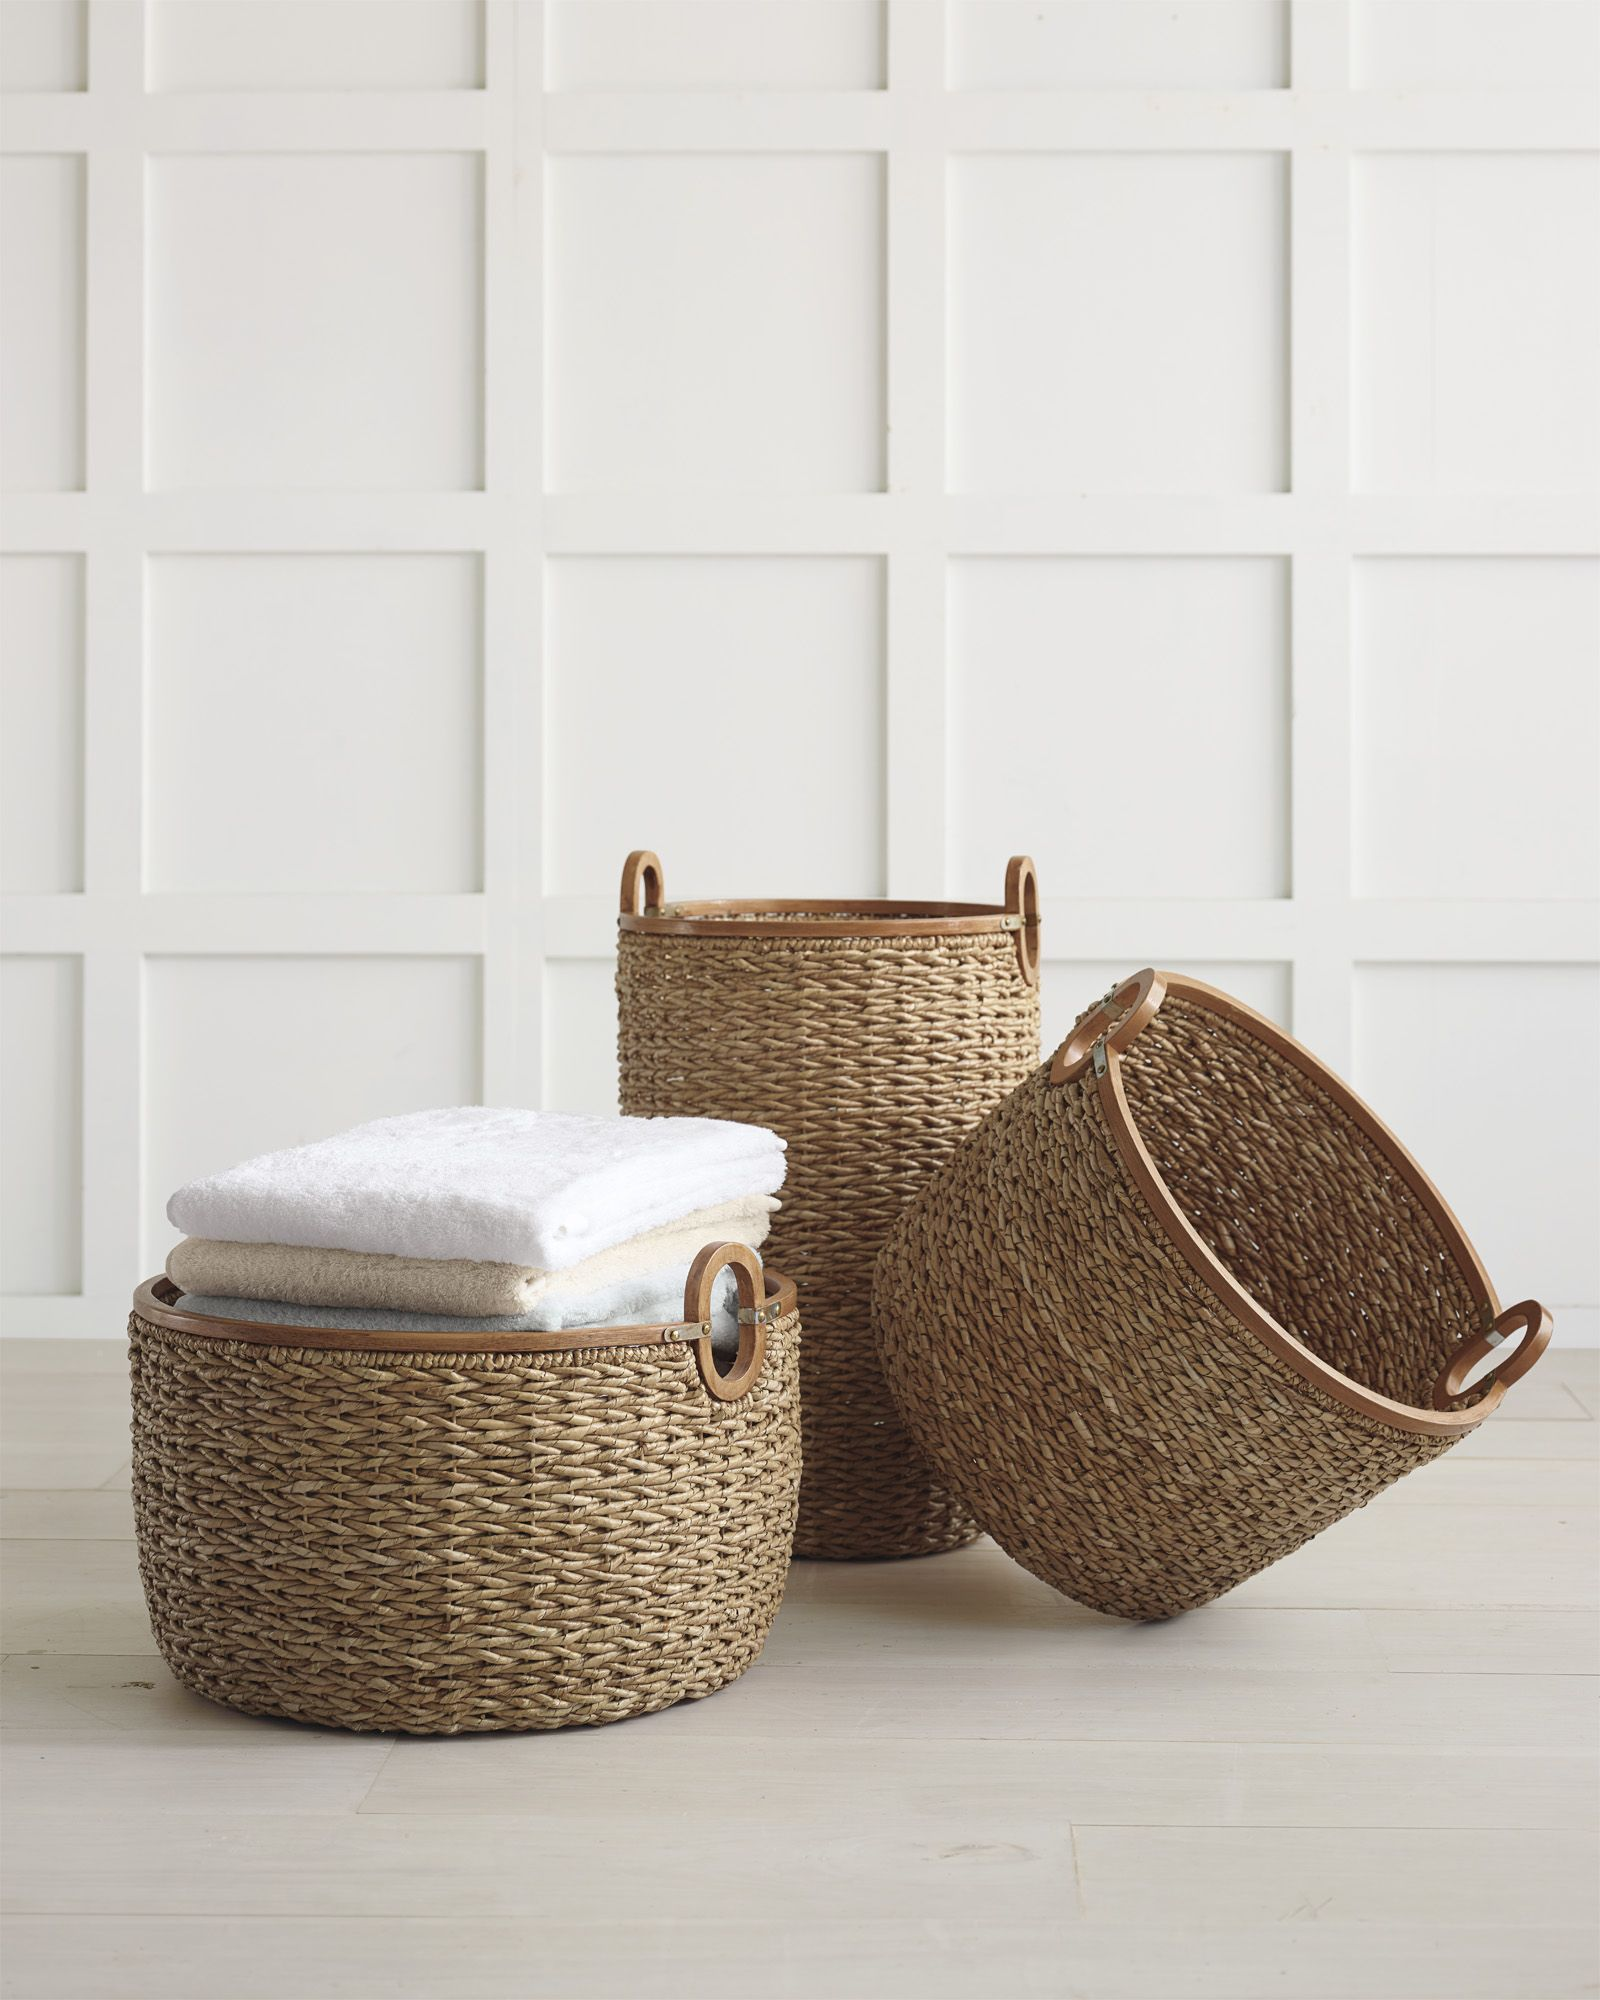 Bath essentials | Seagrass Baskets & Calistoga Bath Collection via ...